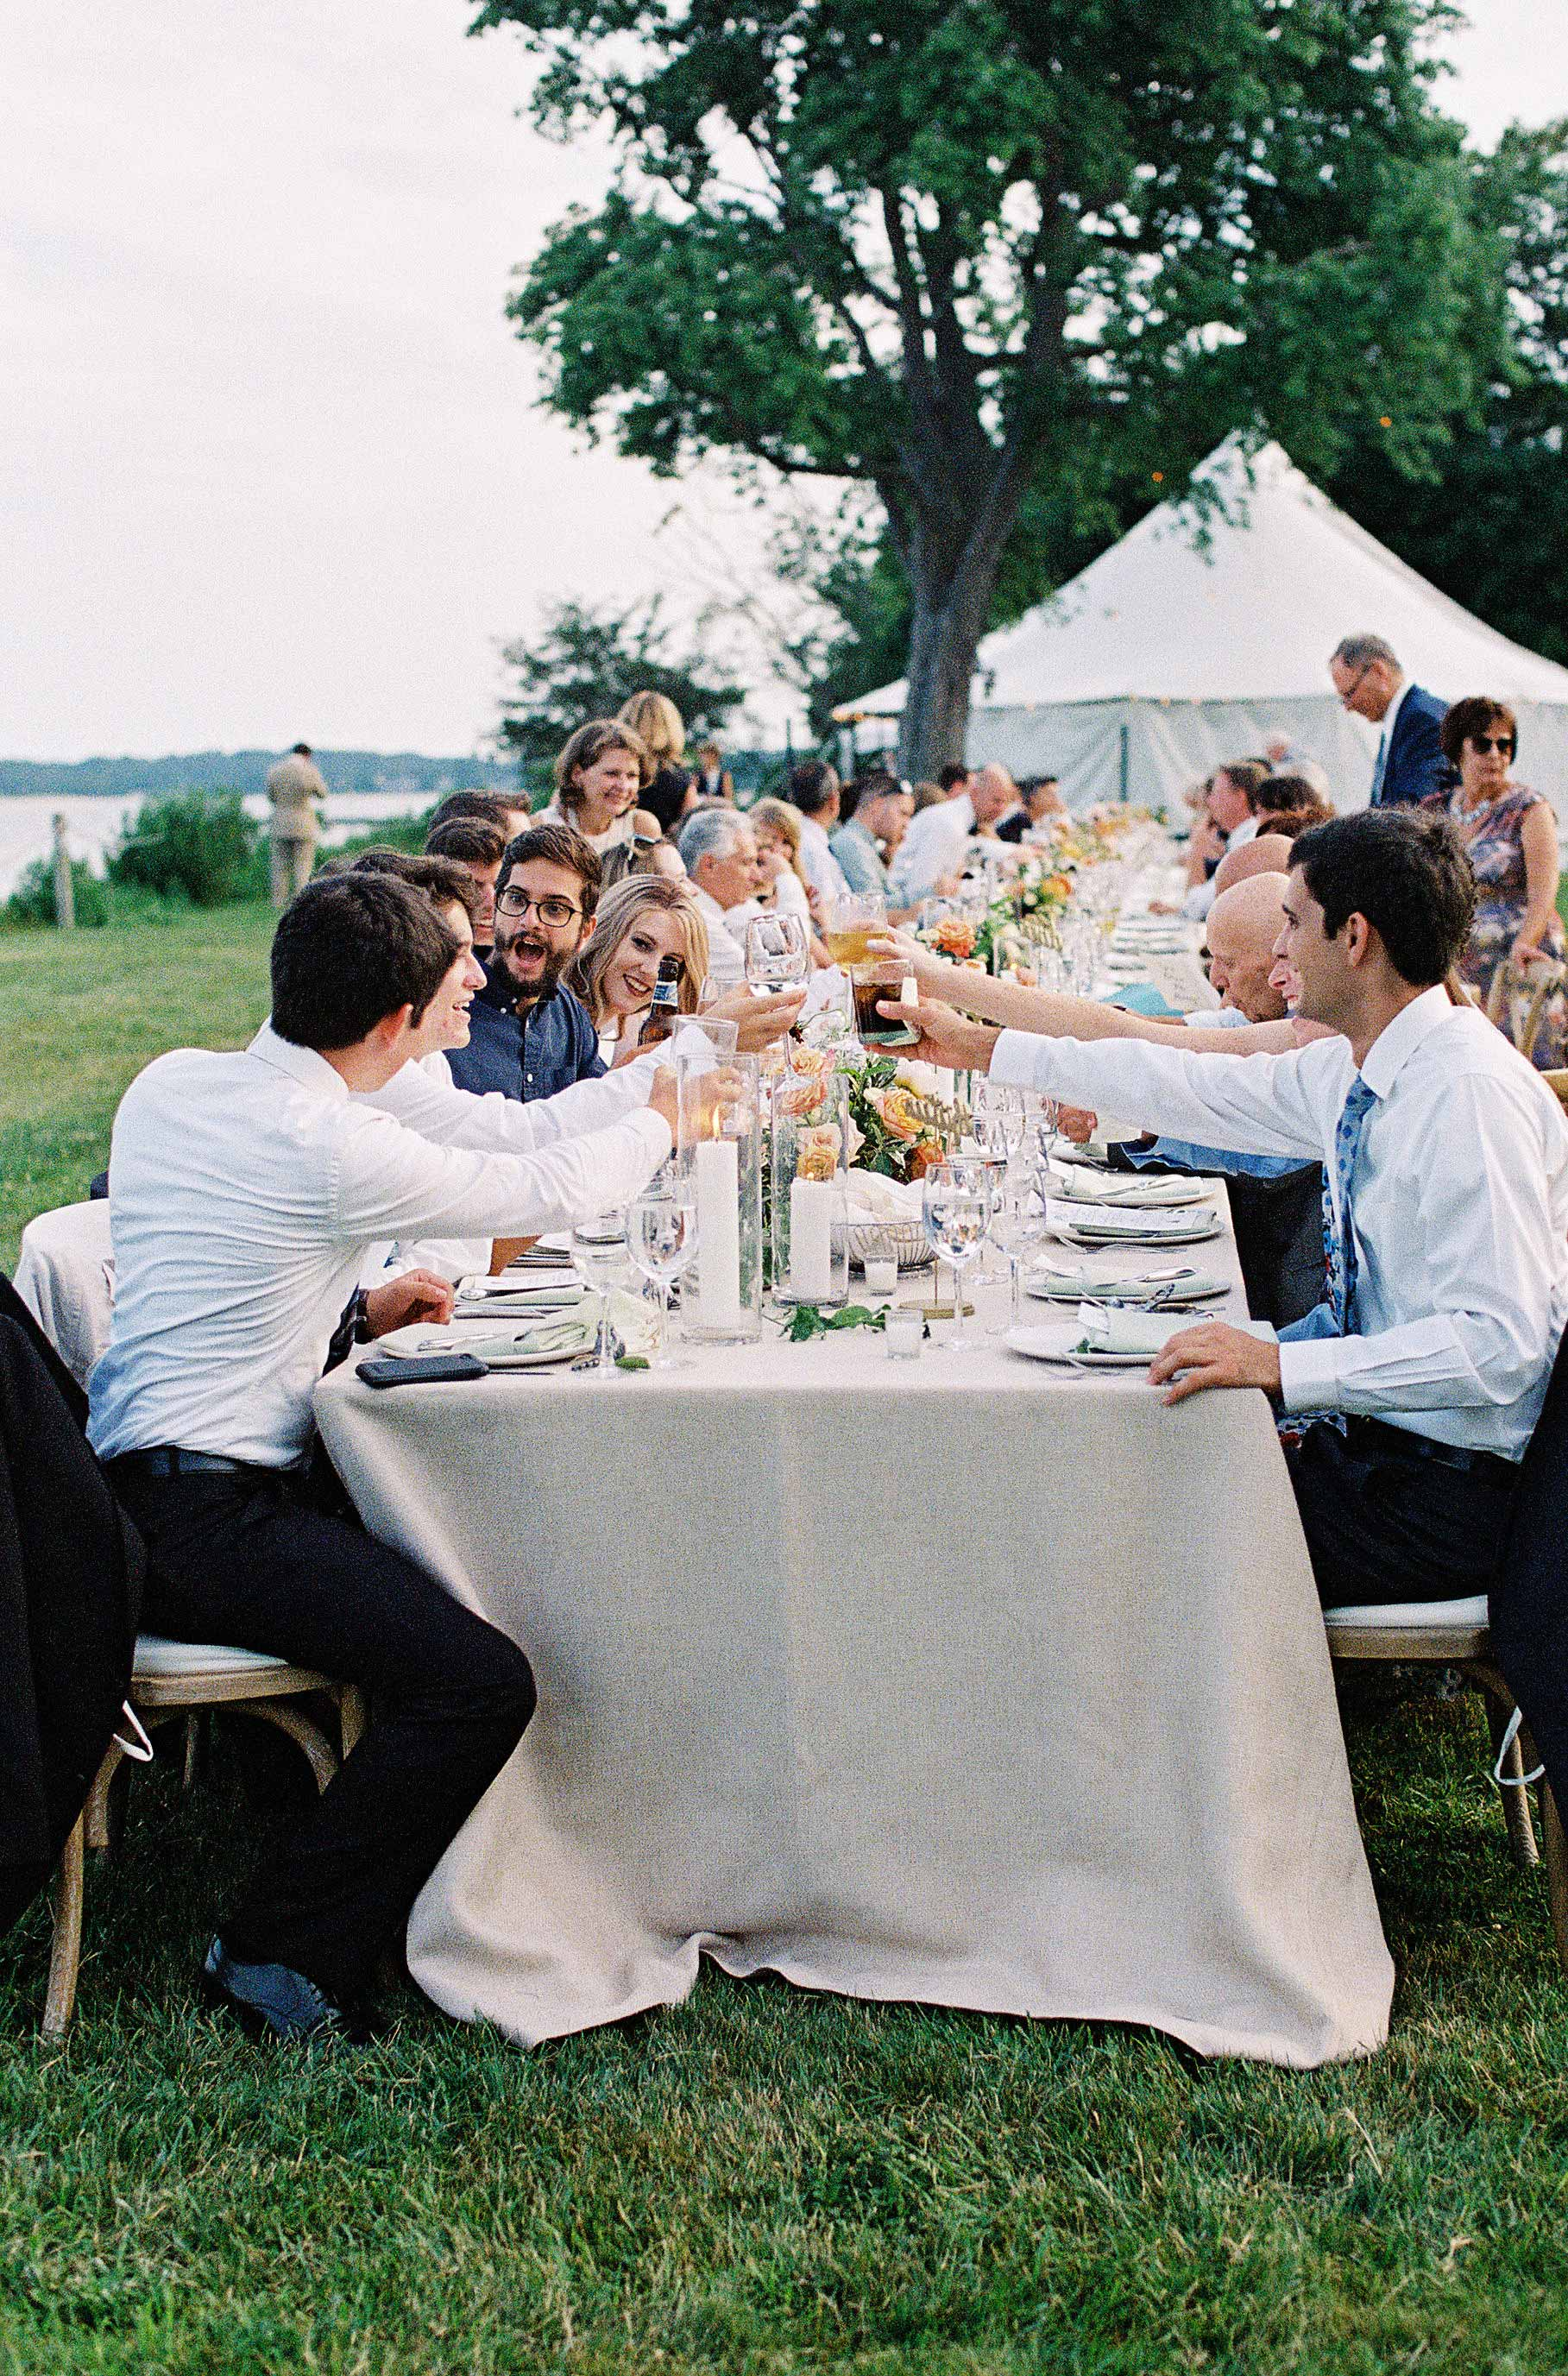 Do You Have to Assign Seats at Your Wedding Reception?